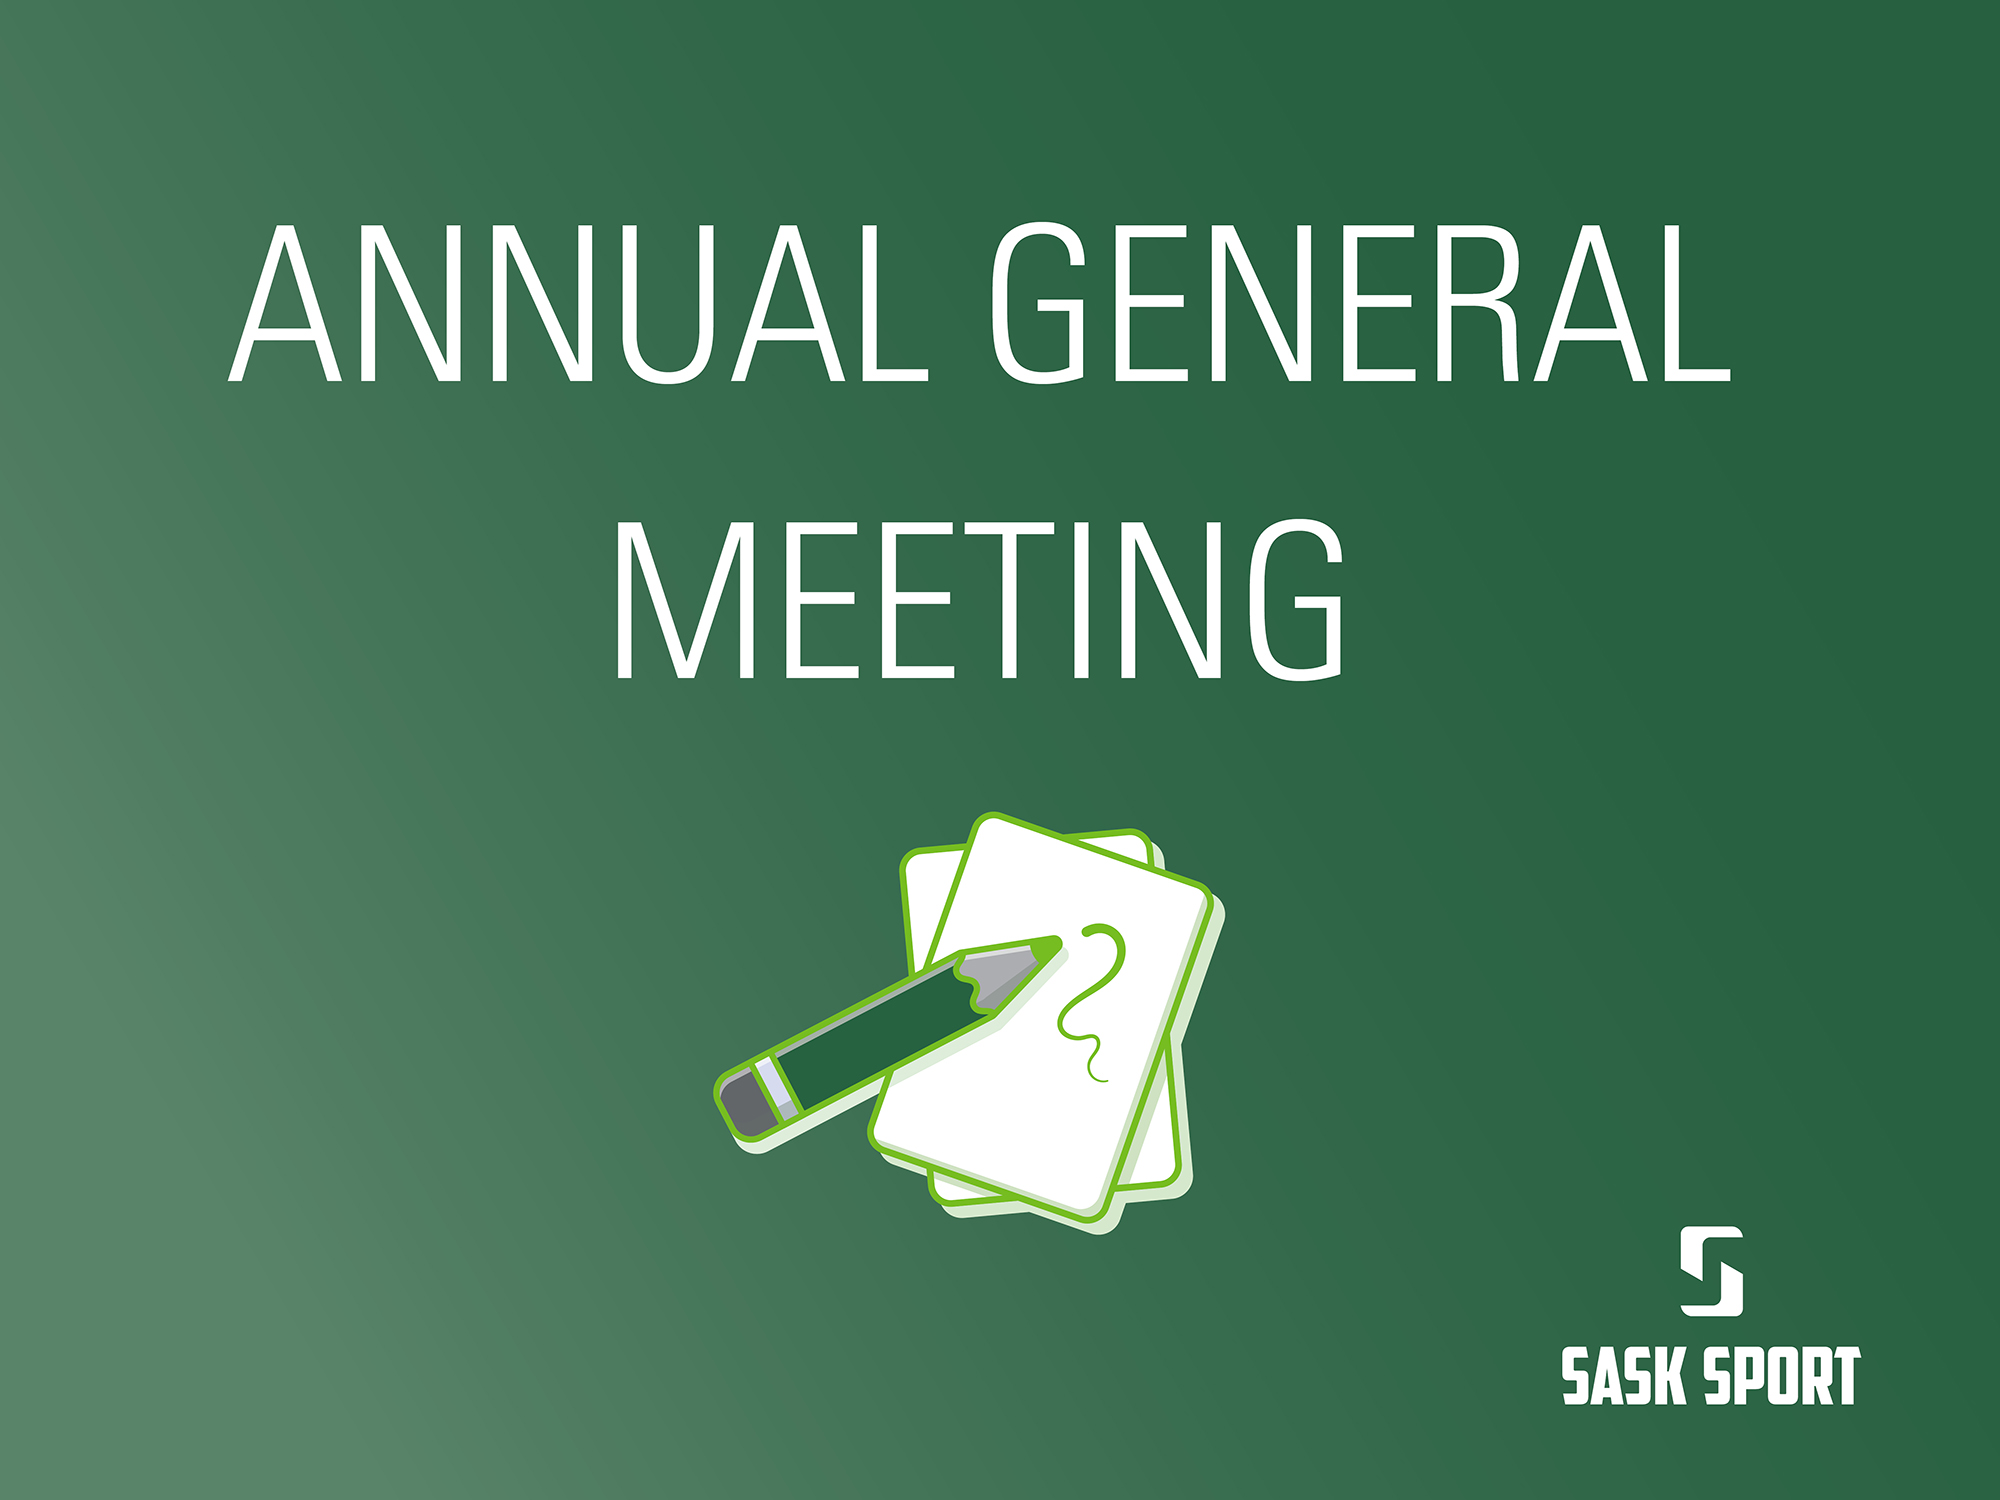 Sask Sport Annual General Meeting